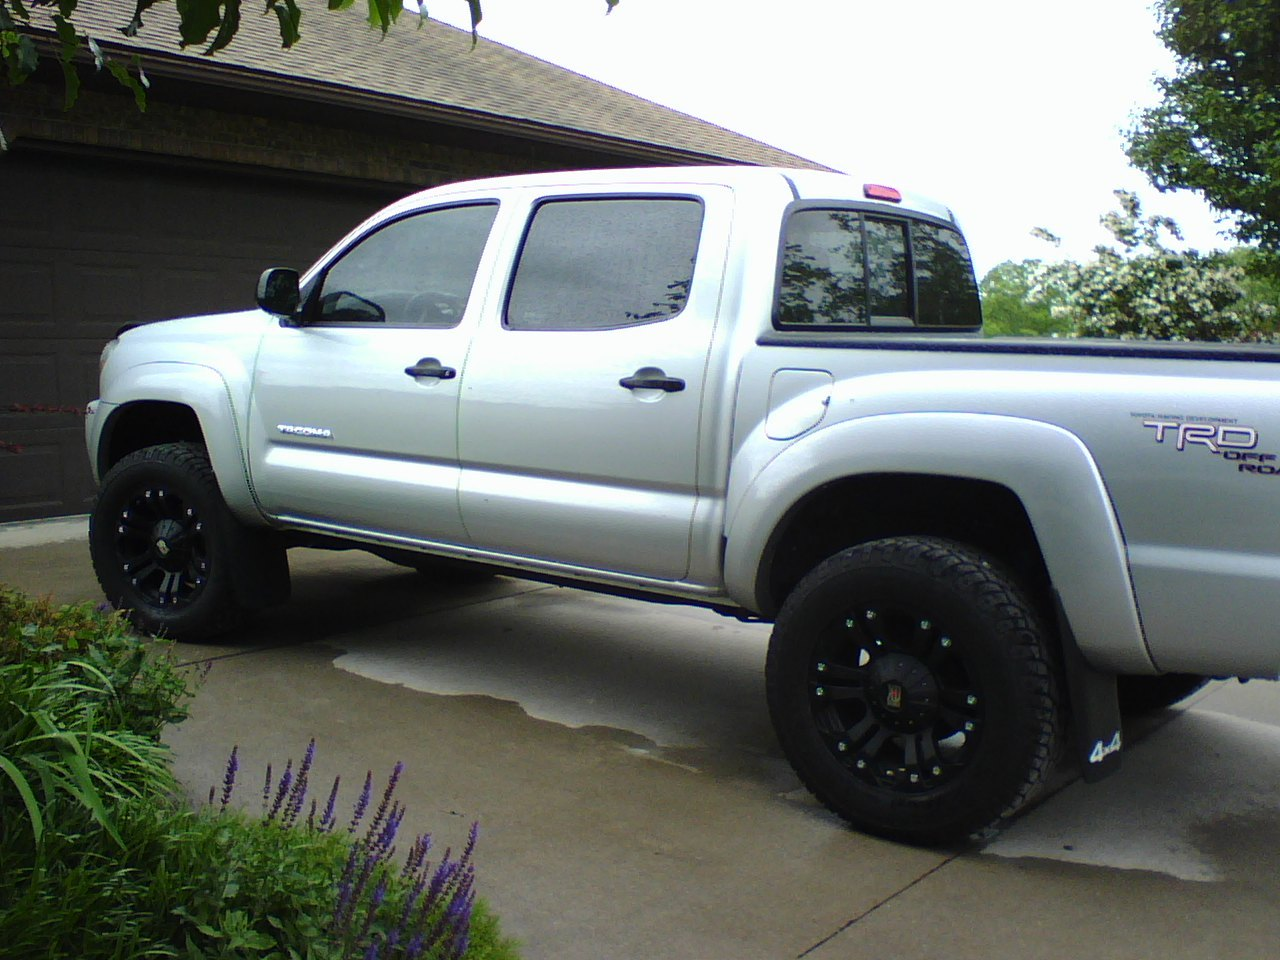 Nosnil70 2006 Toyota Tacoma Xtra Cab Specs, Photos, Modification ...